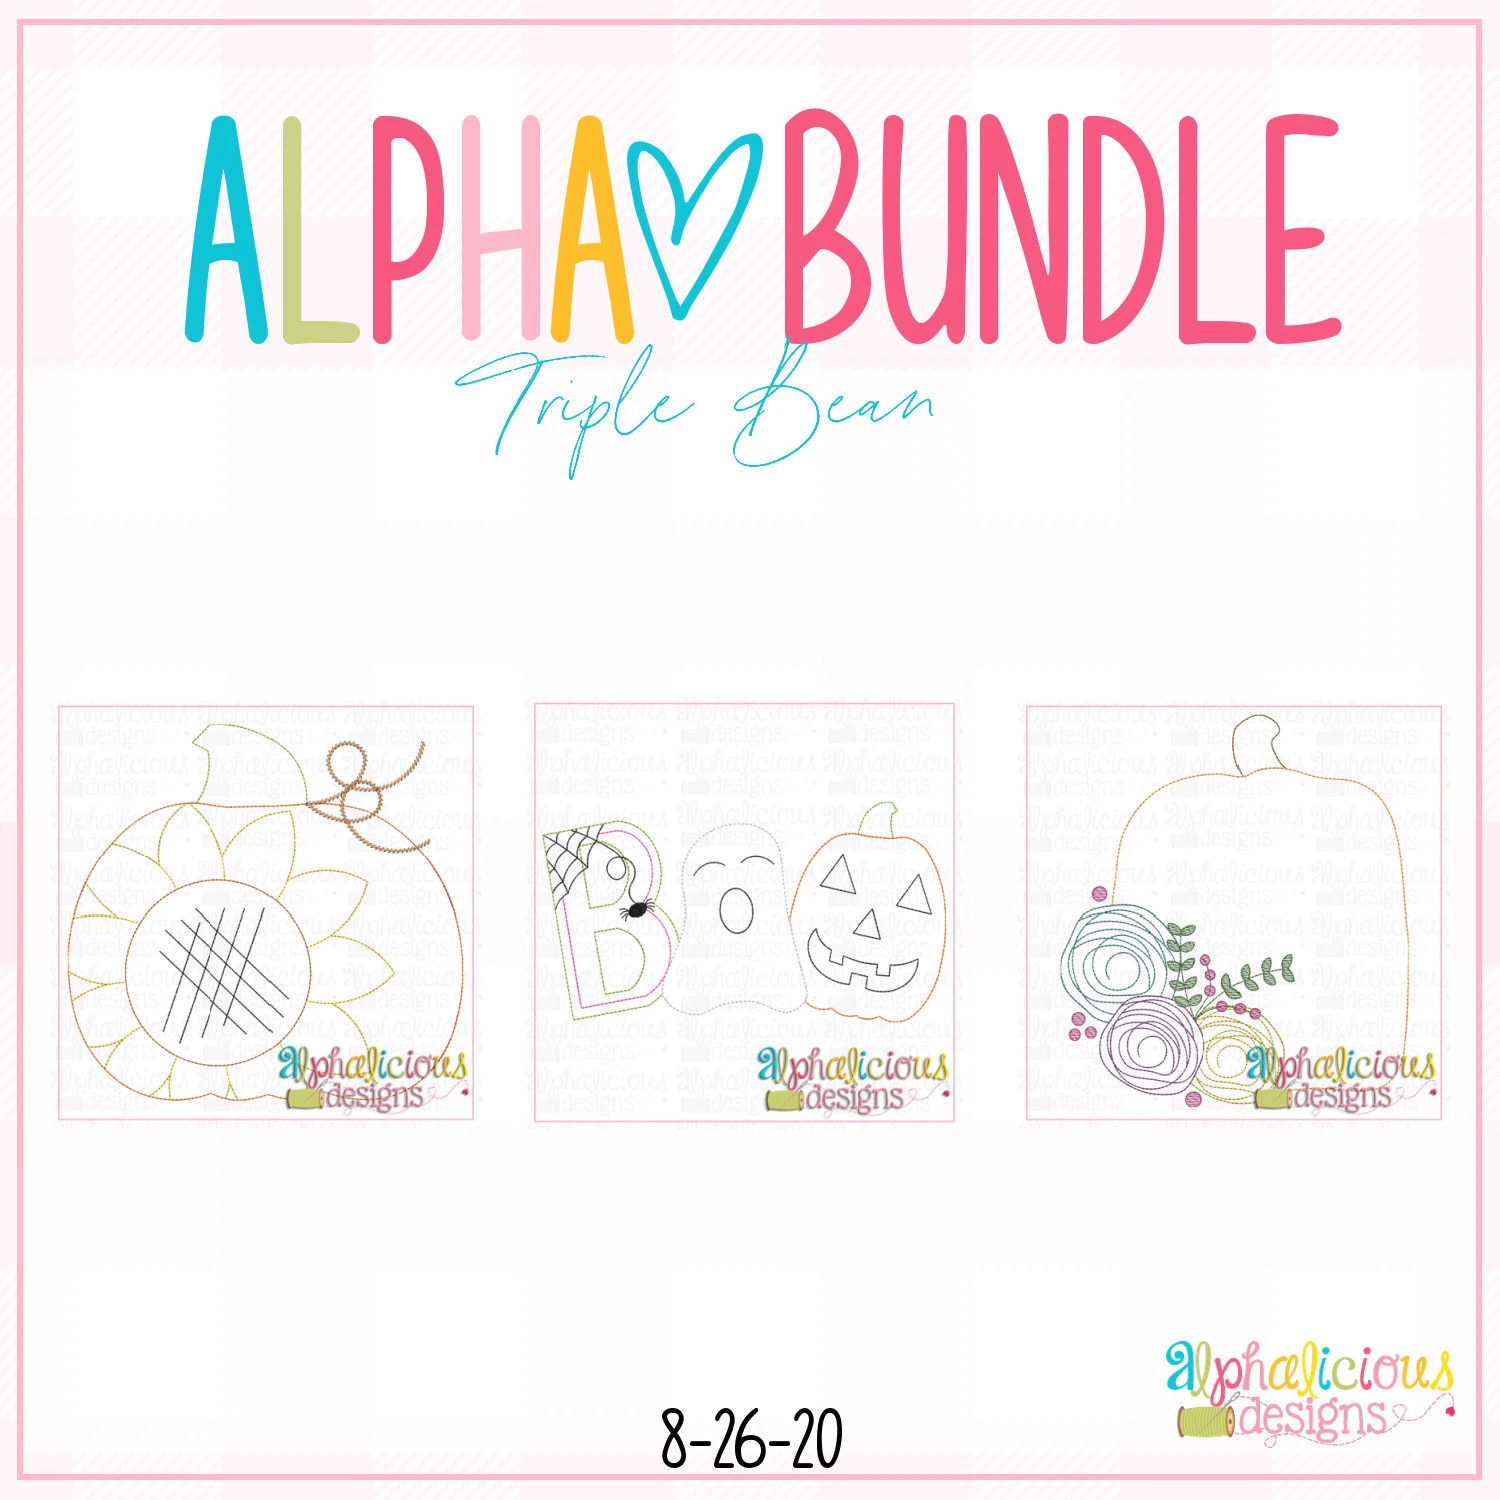 ALPHA BUNDLE-8/26/20 Release-Triple Bean Stitch